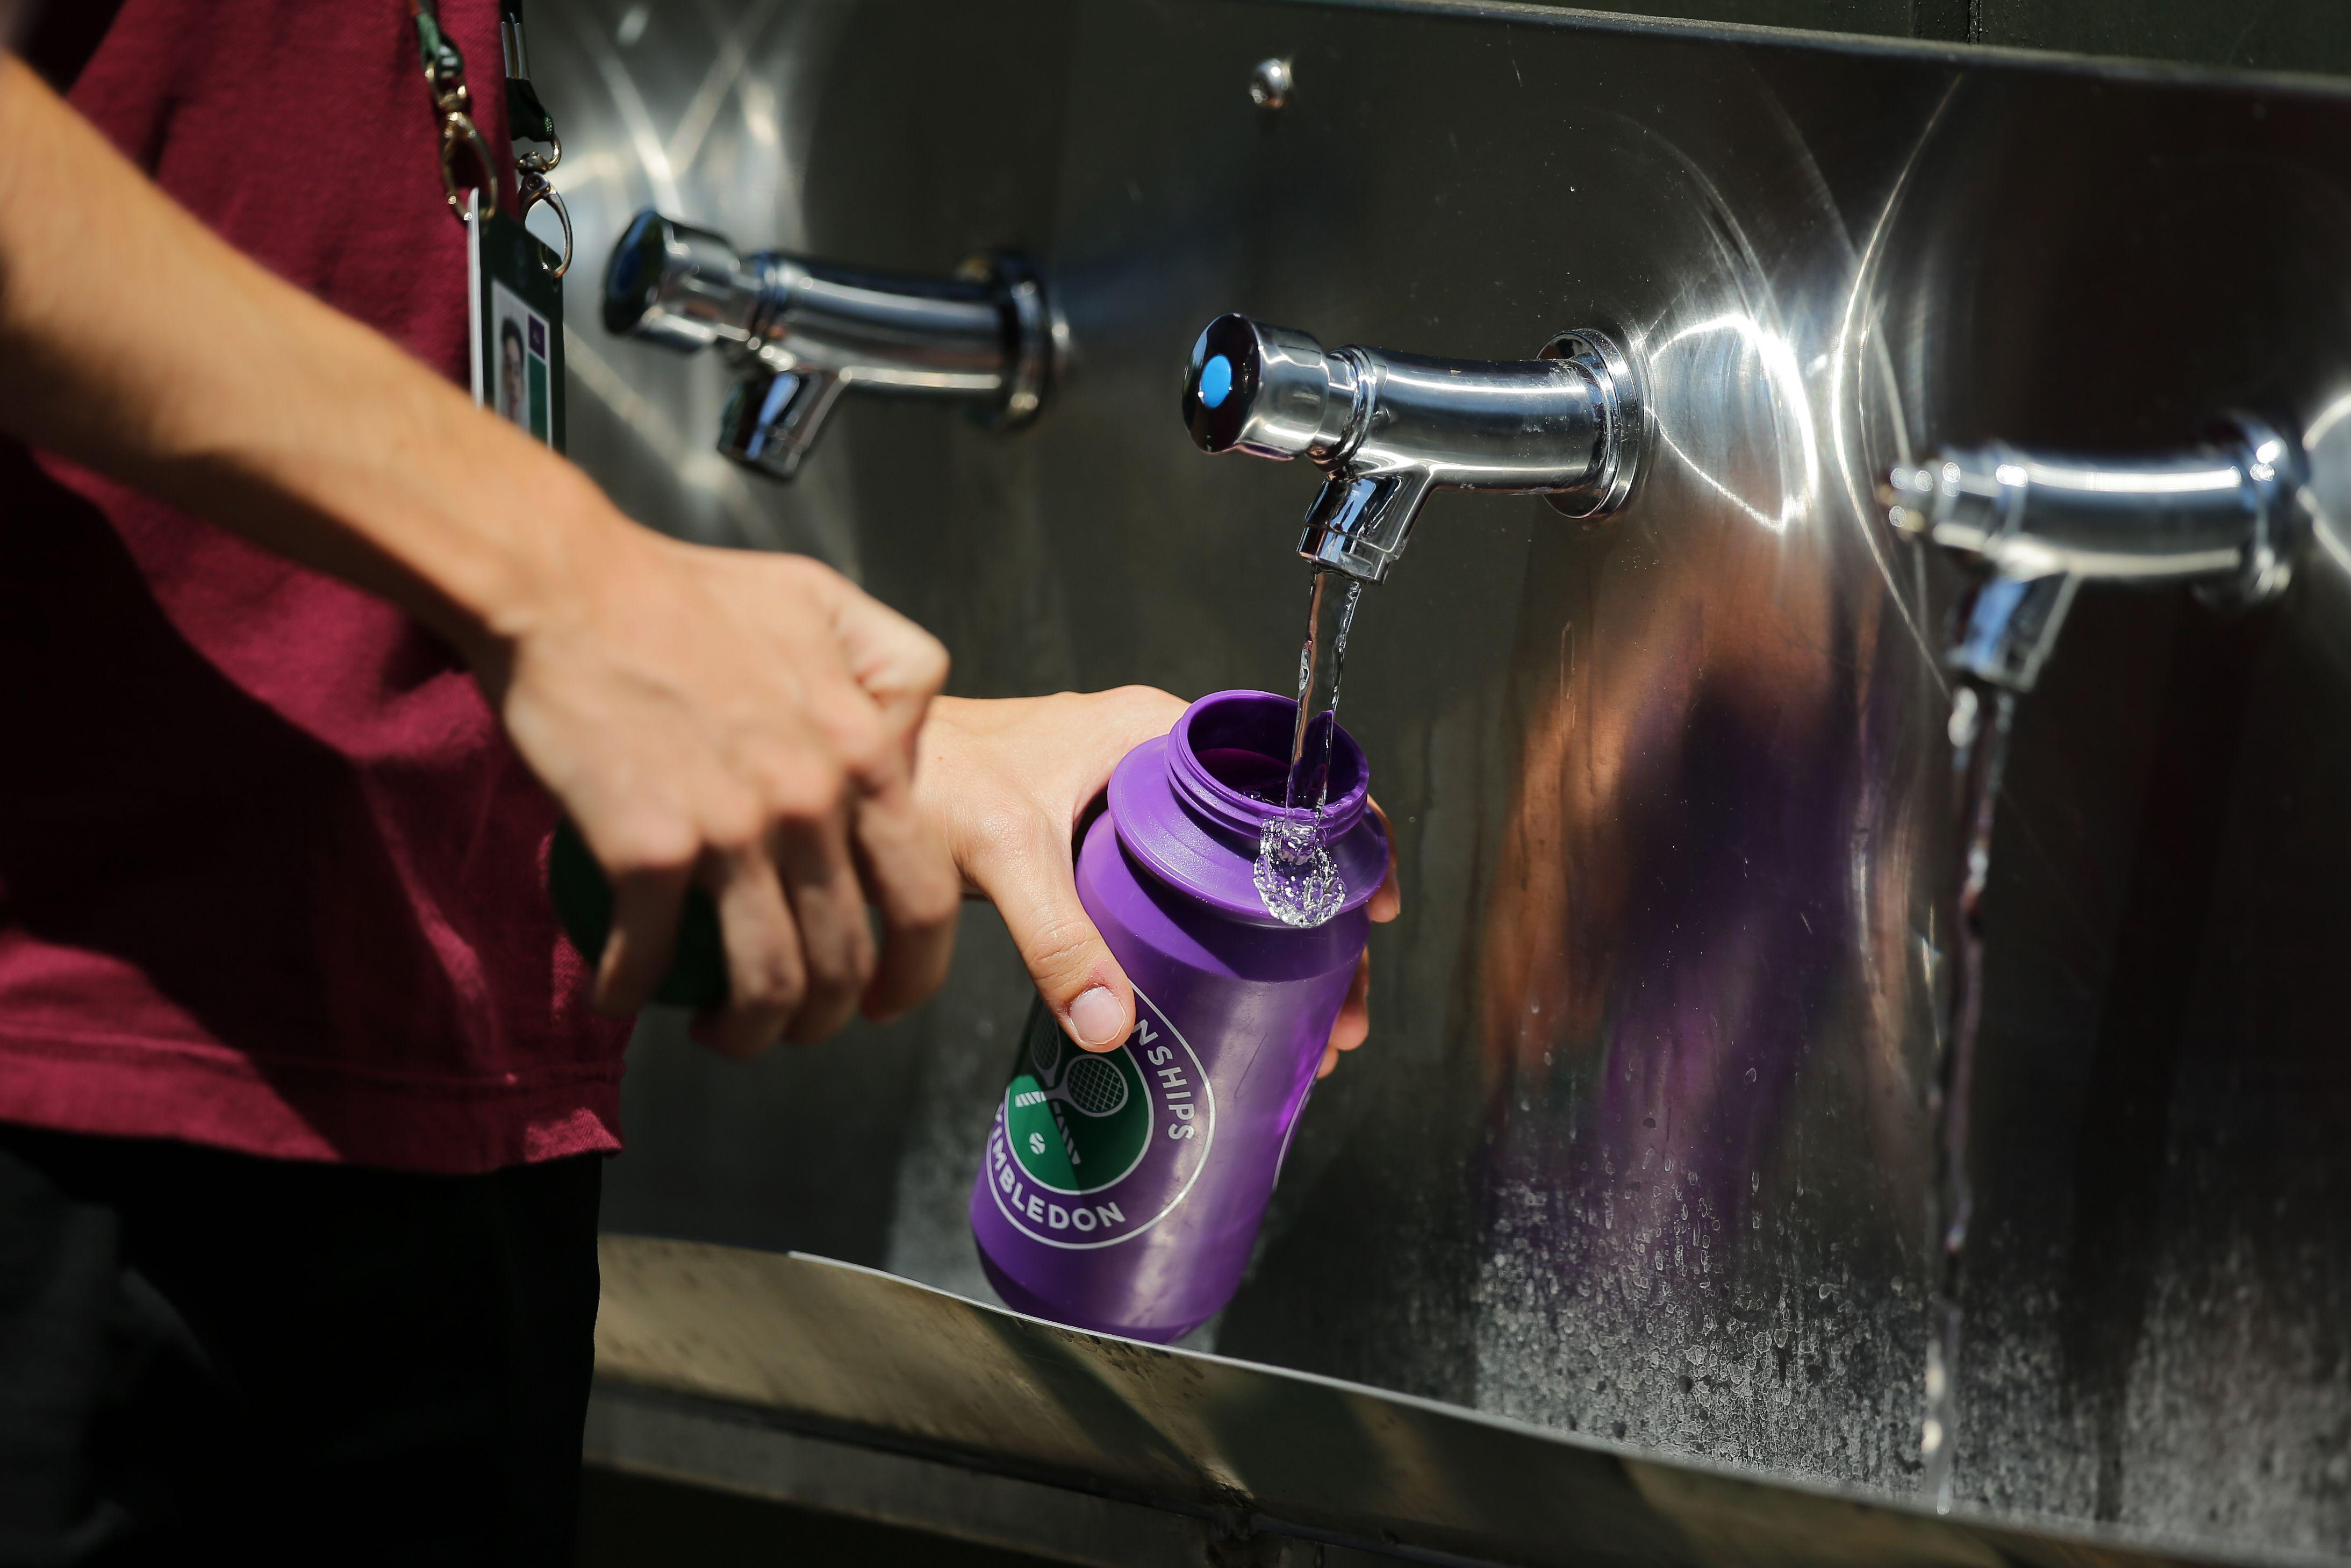 Person refilling a reusable water bottle with water.